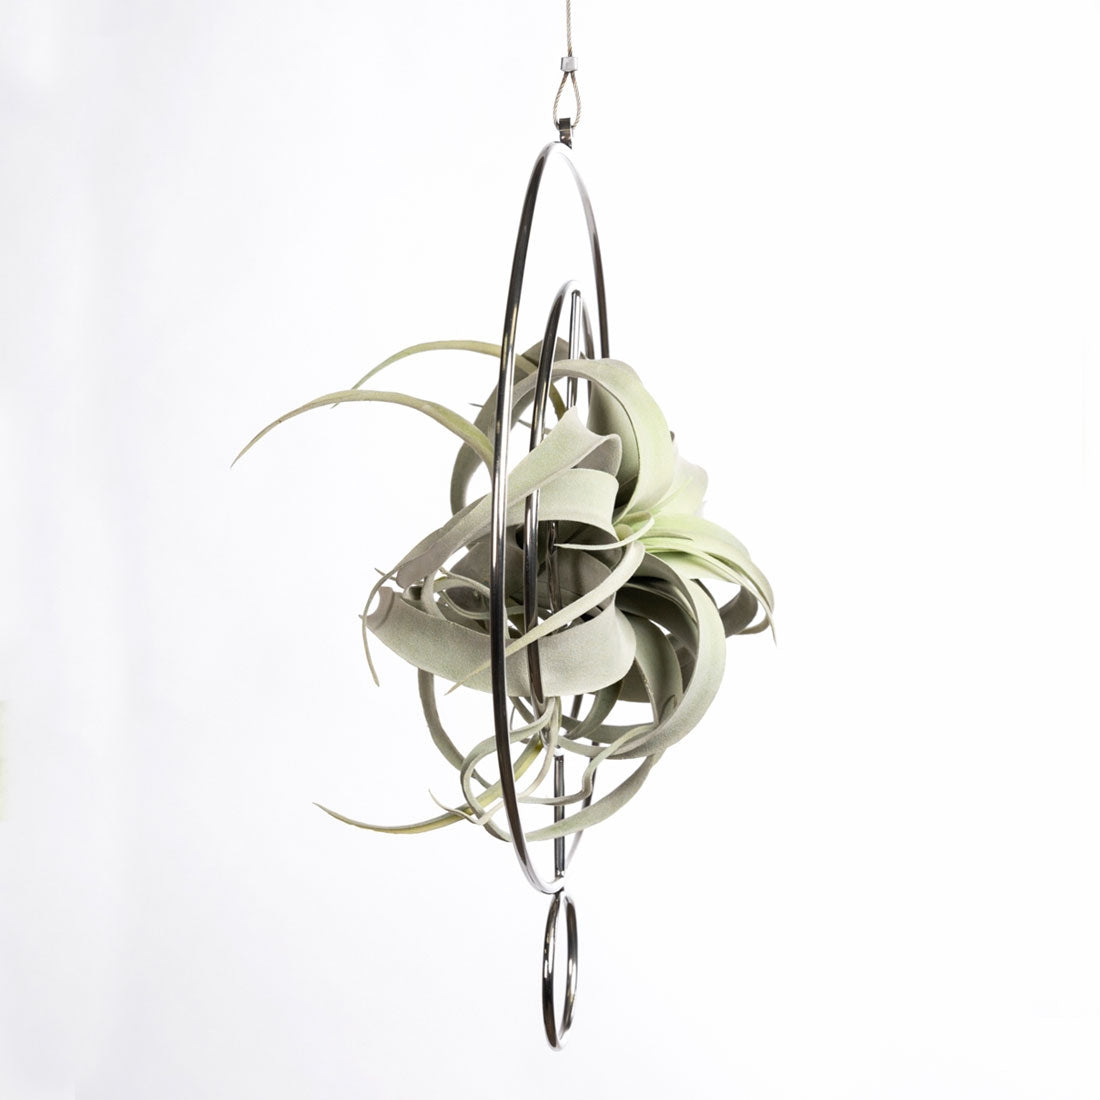 Orbit Hanging Sculpture